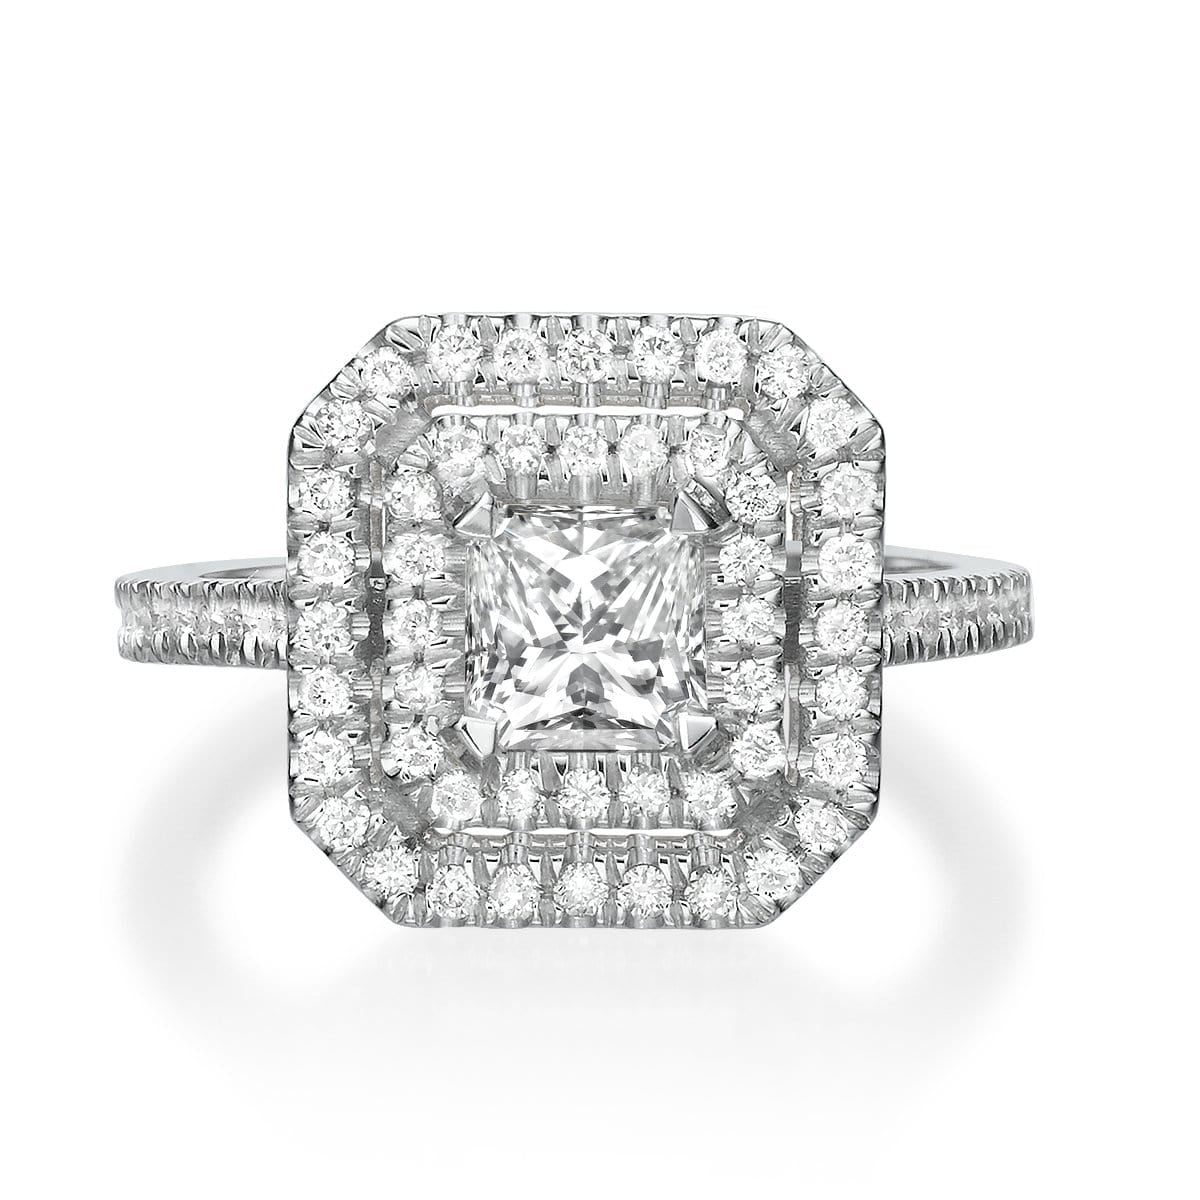 1.87 ct Princess Cut Diamond Engagement Ring